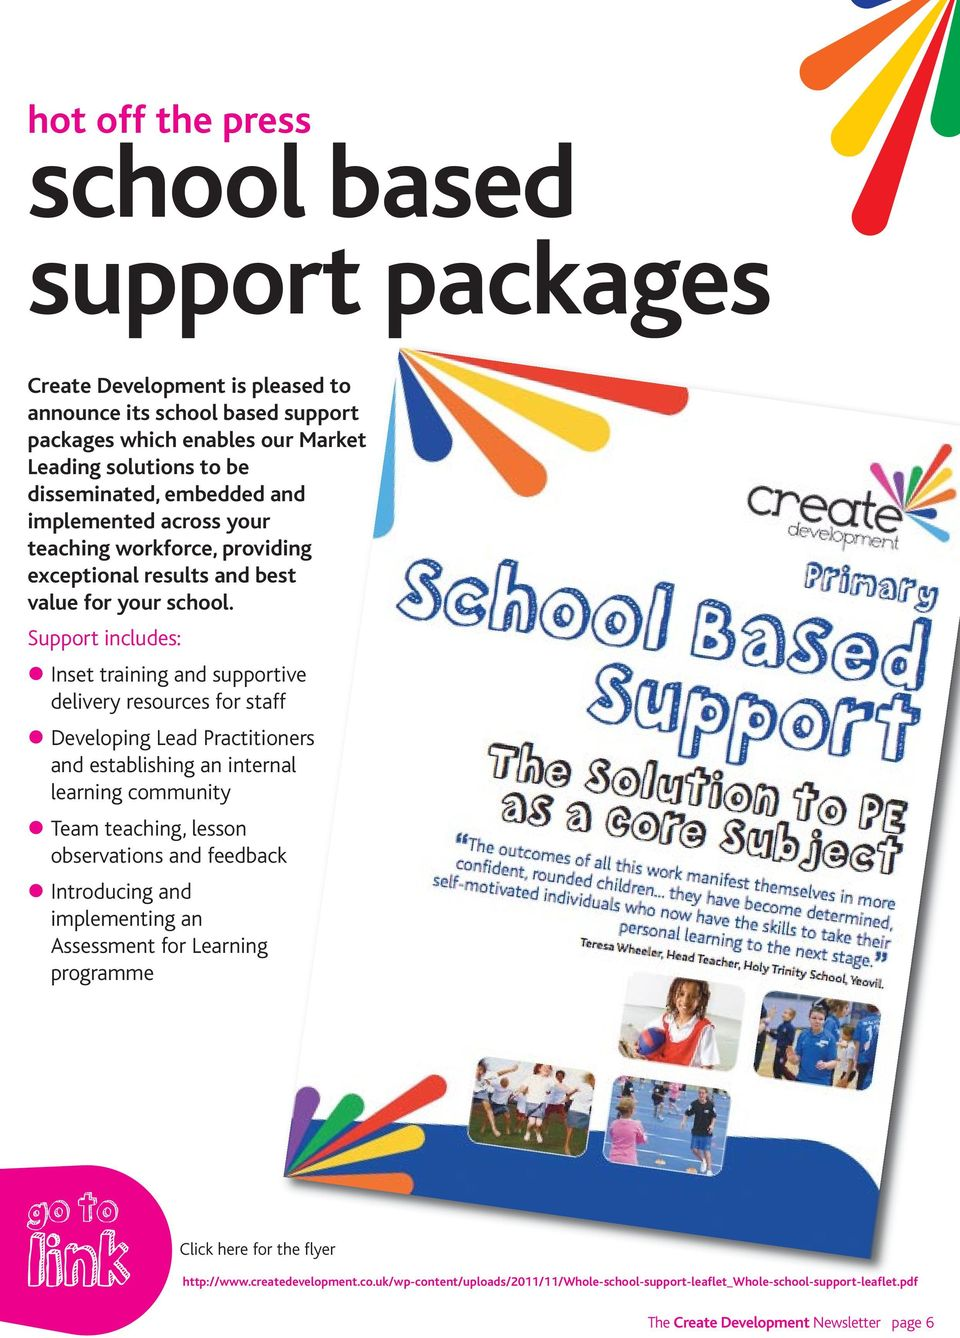 Support includes: Inset training and supportive delivery resources for staff Developing Lead Practitioners and establishing an internal learning community Team teaching, lesson